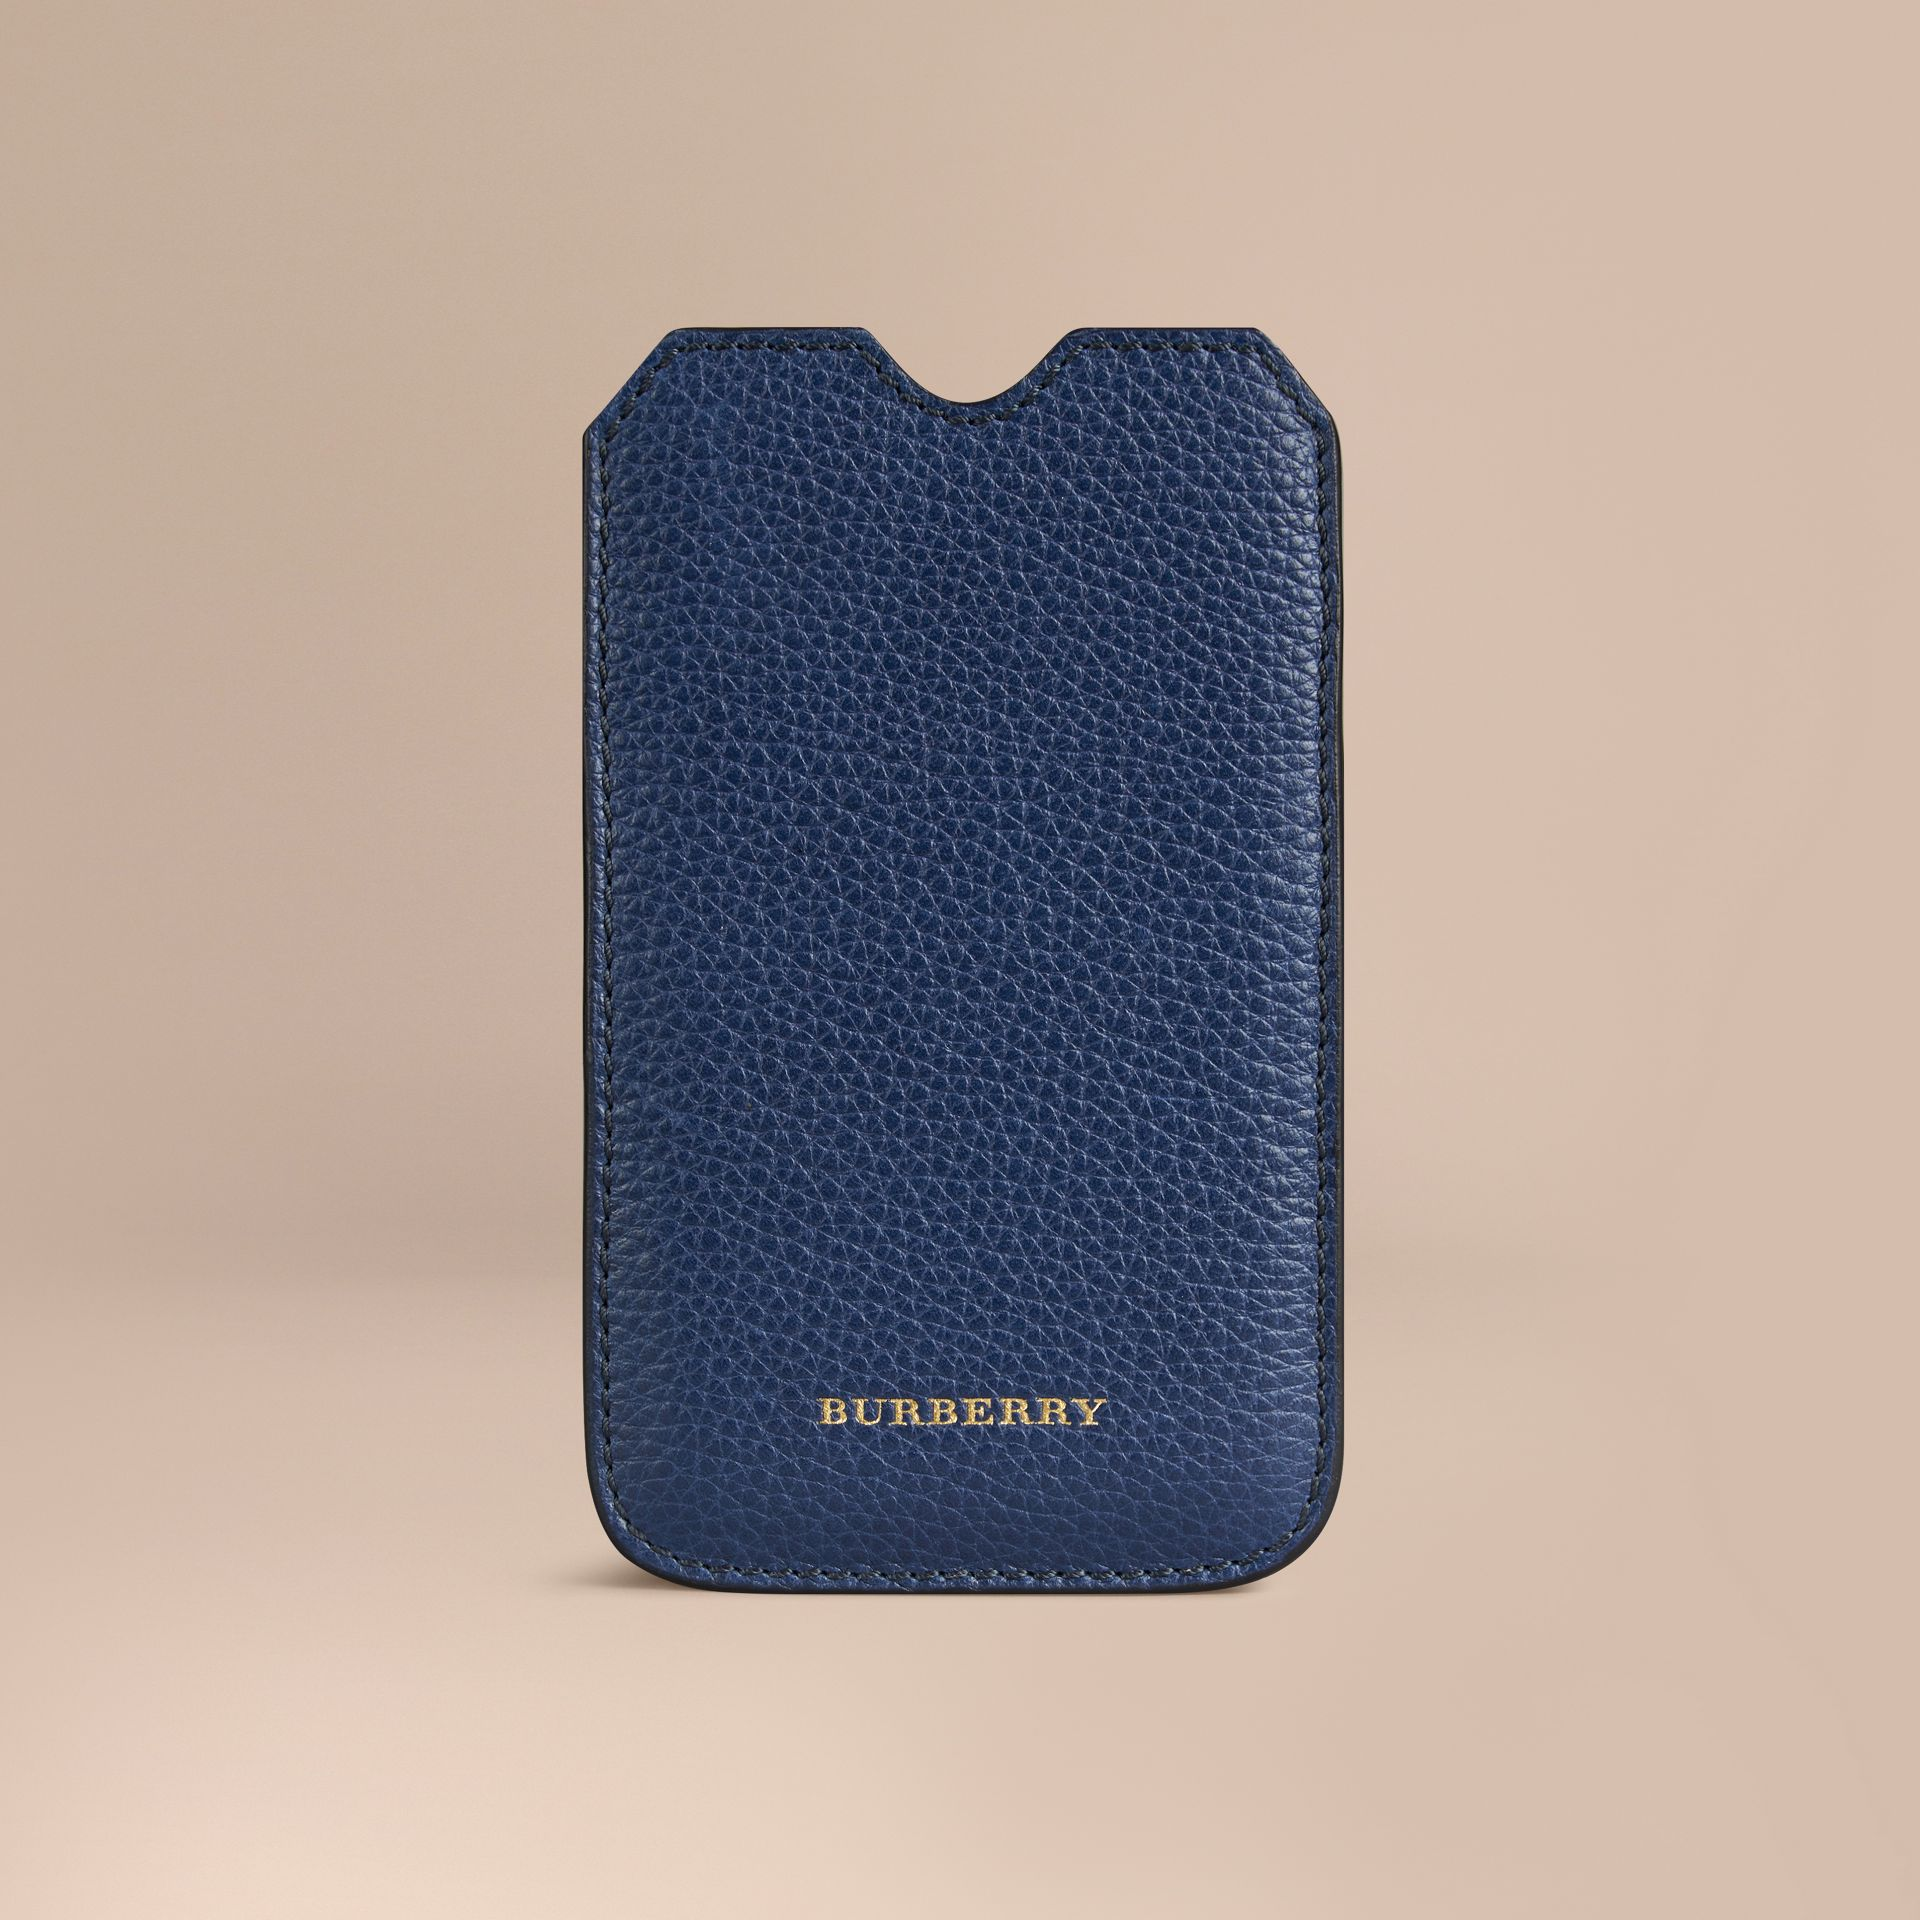 Custodia in pelle a grana per iPhone 5/5S (Navy Intenso) | Burberry - immagine della galleria 1